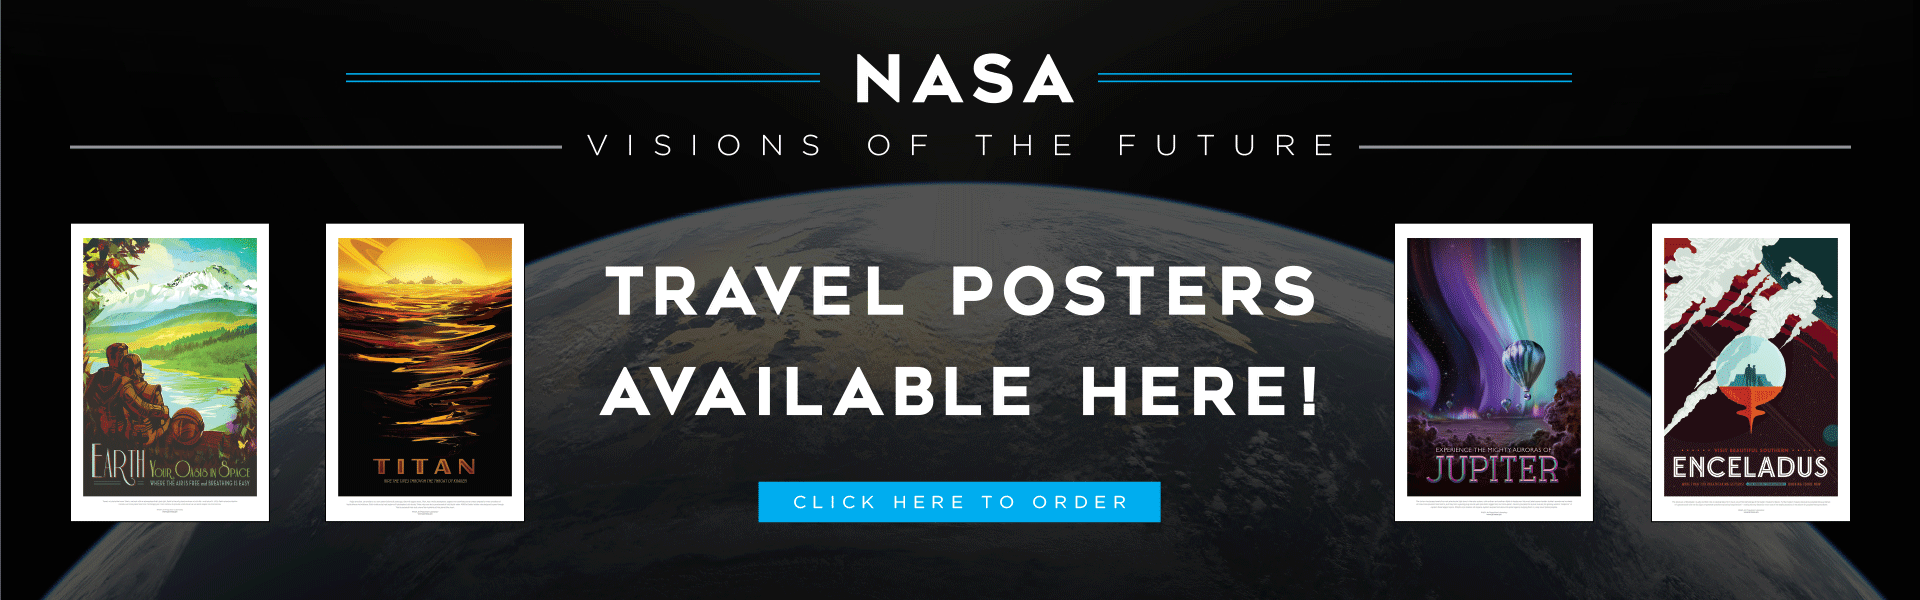 Get all your space poster needs at Shortrunposters.com.